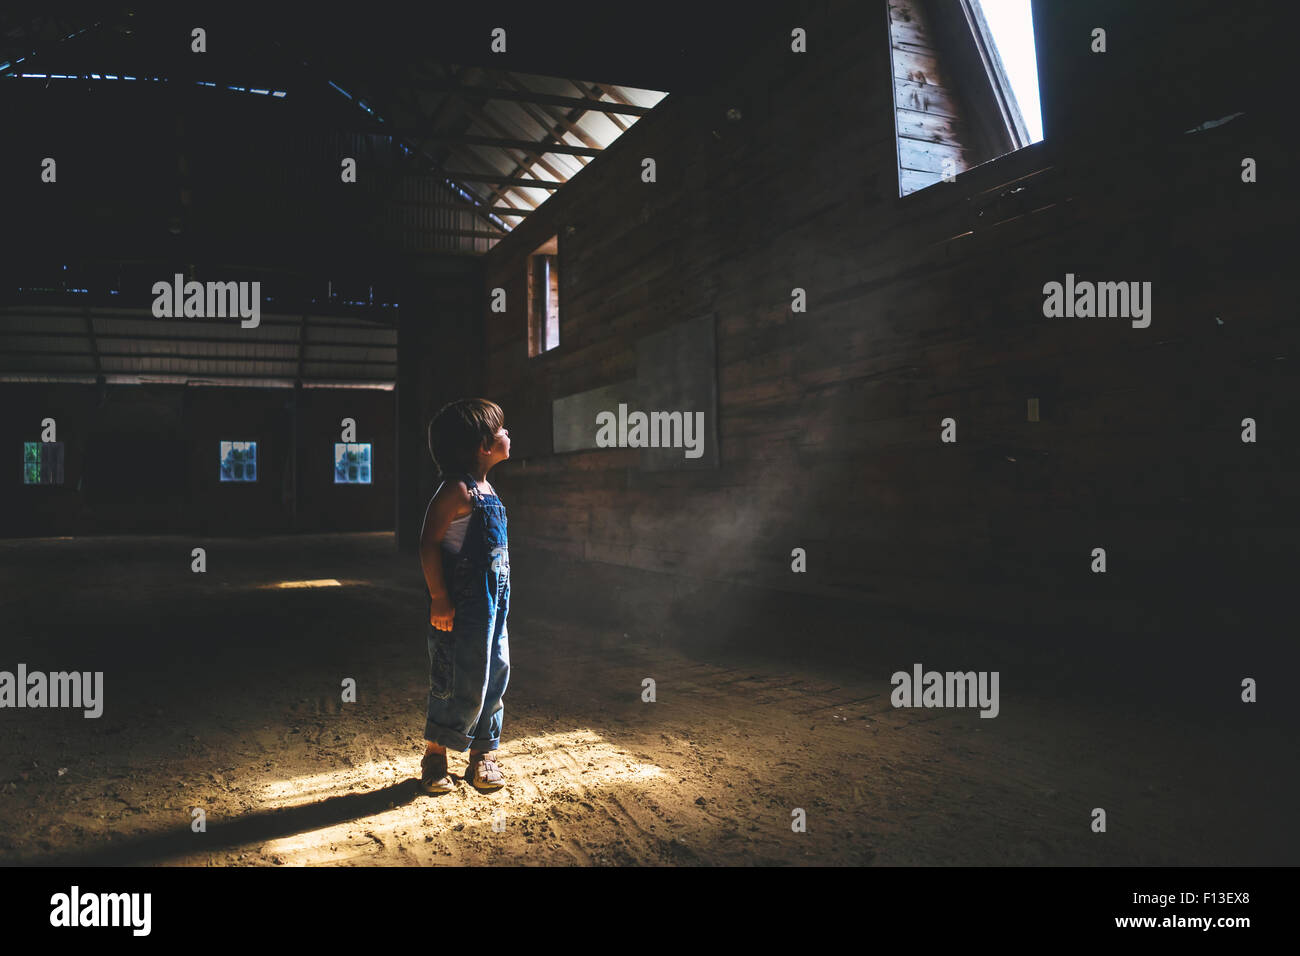 Boy looking up at a window in a barn - Stock Image